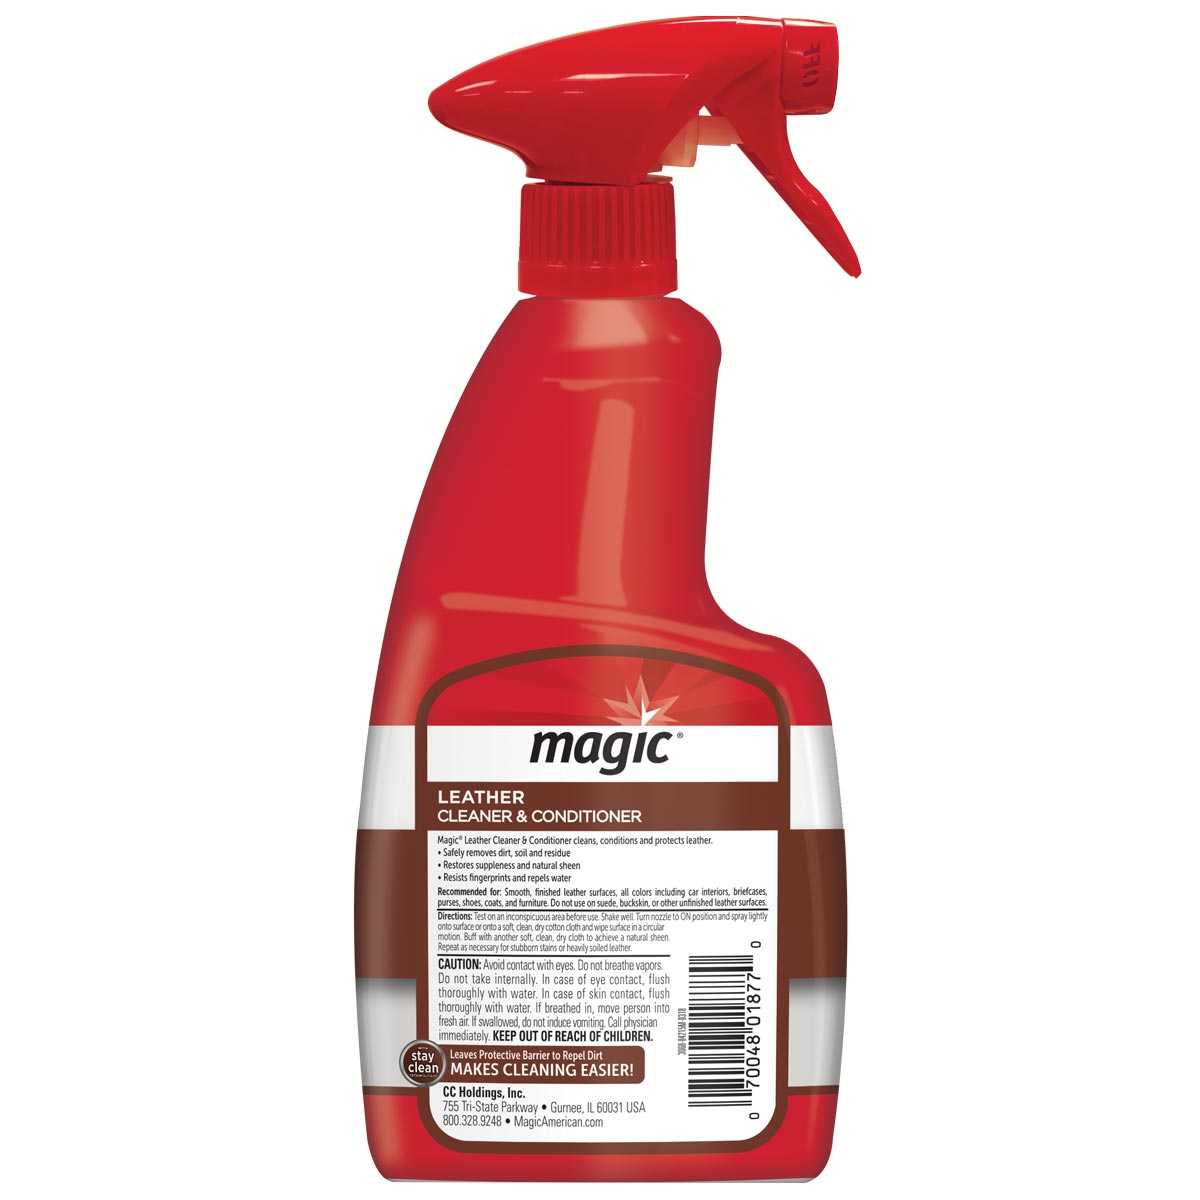 Magic Leather Cleaner back label